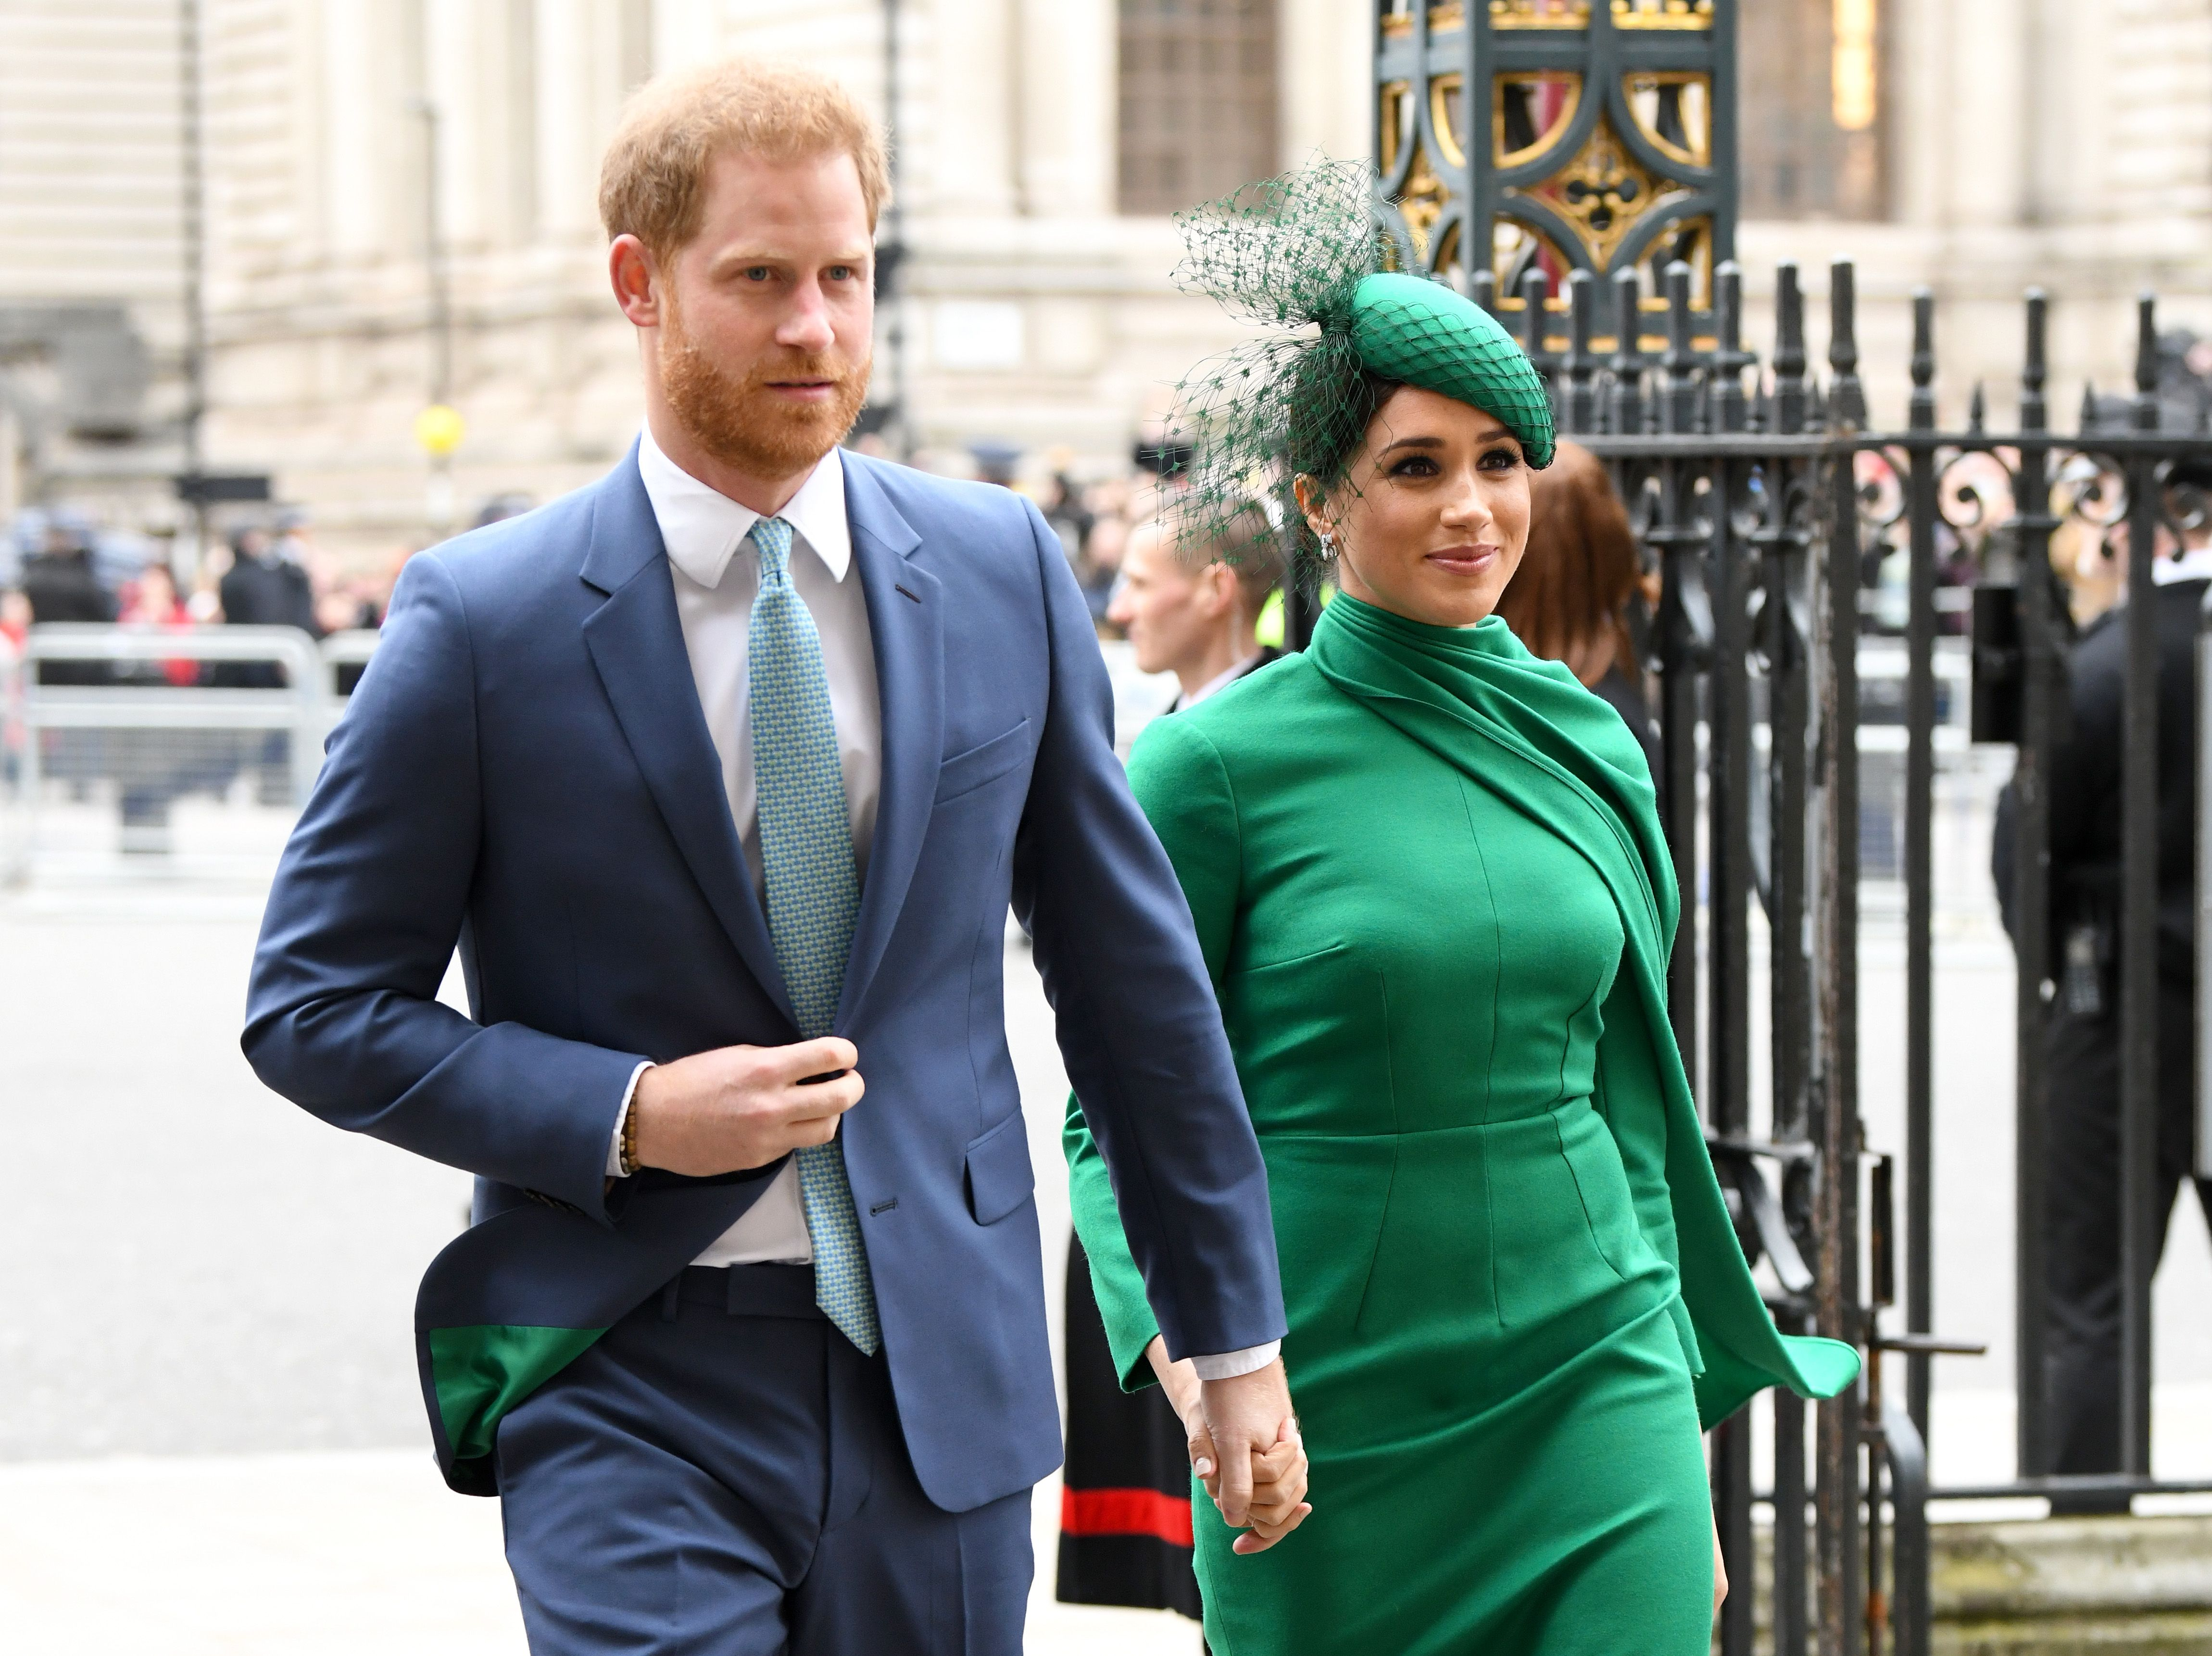 Prince Harry and Meghan Markle Reportedly Plan to Christen Lilibet in California